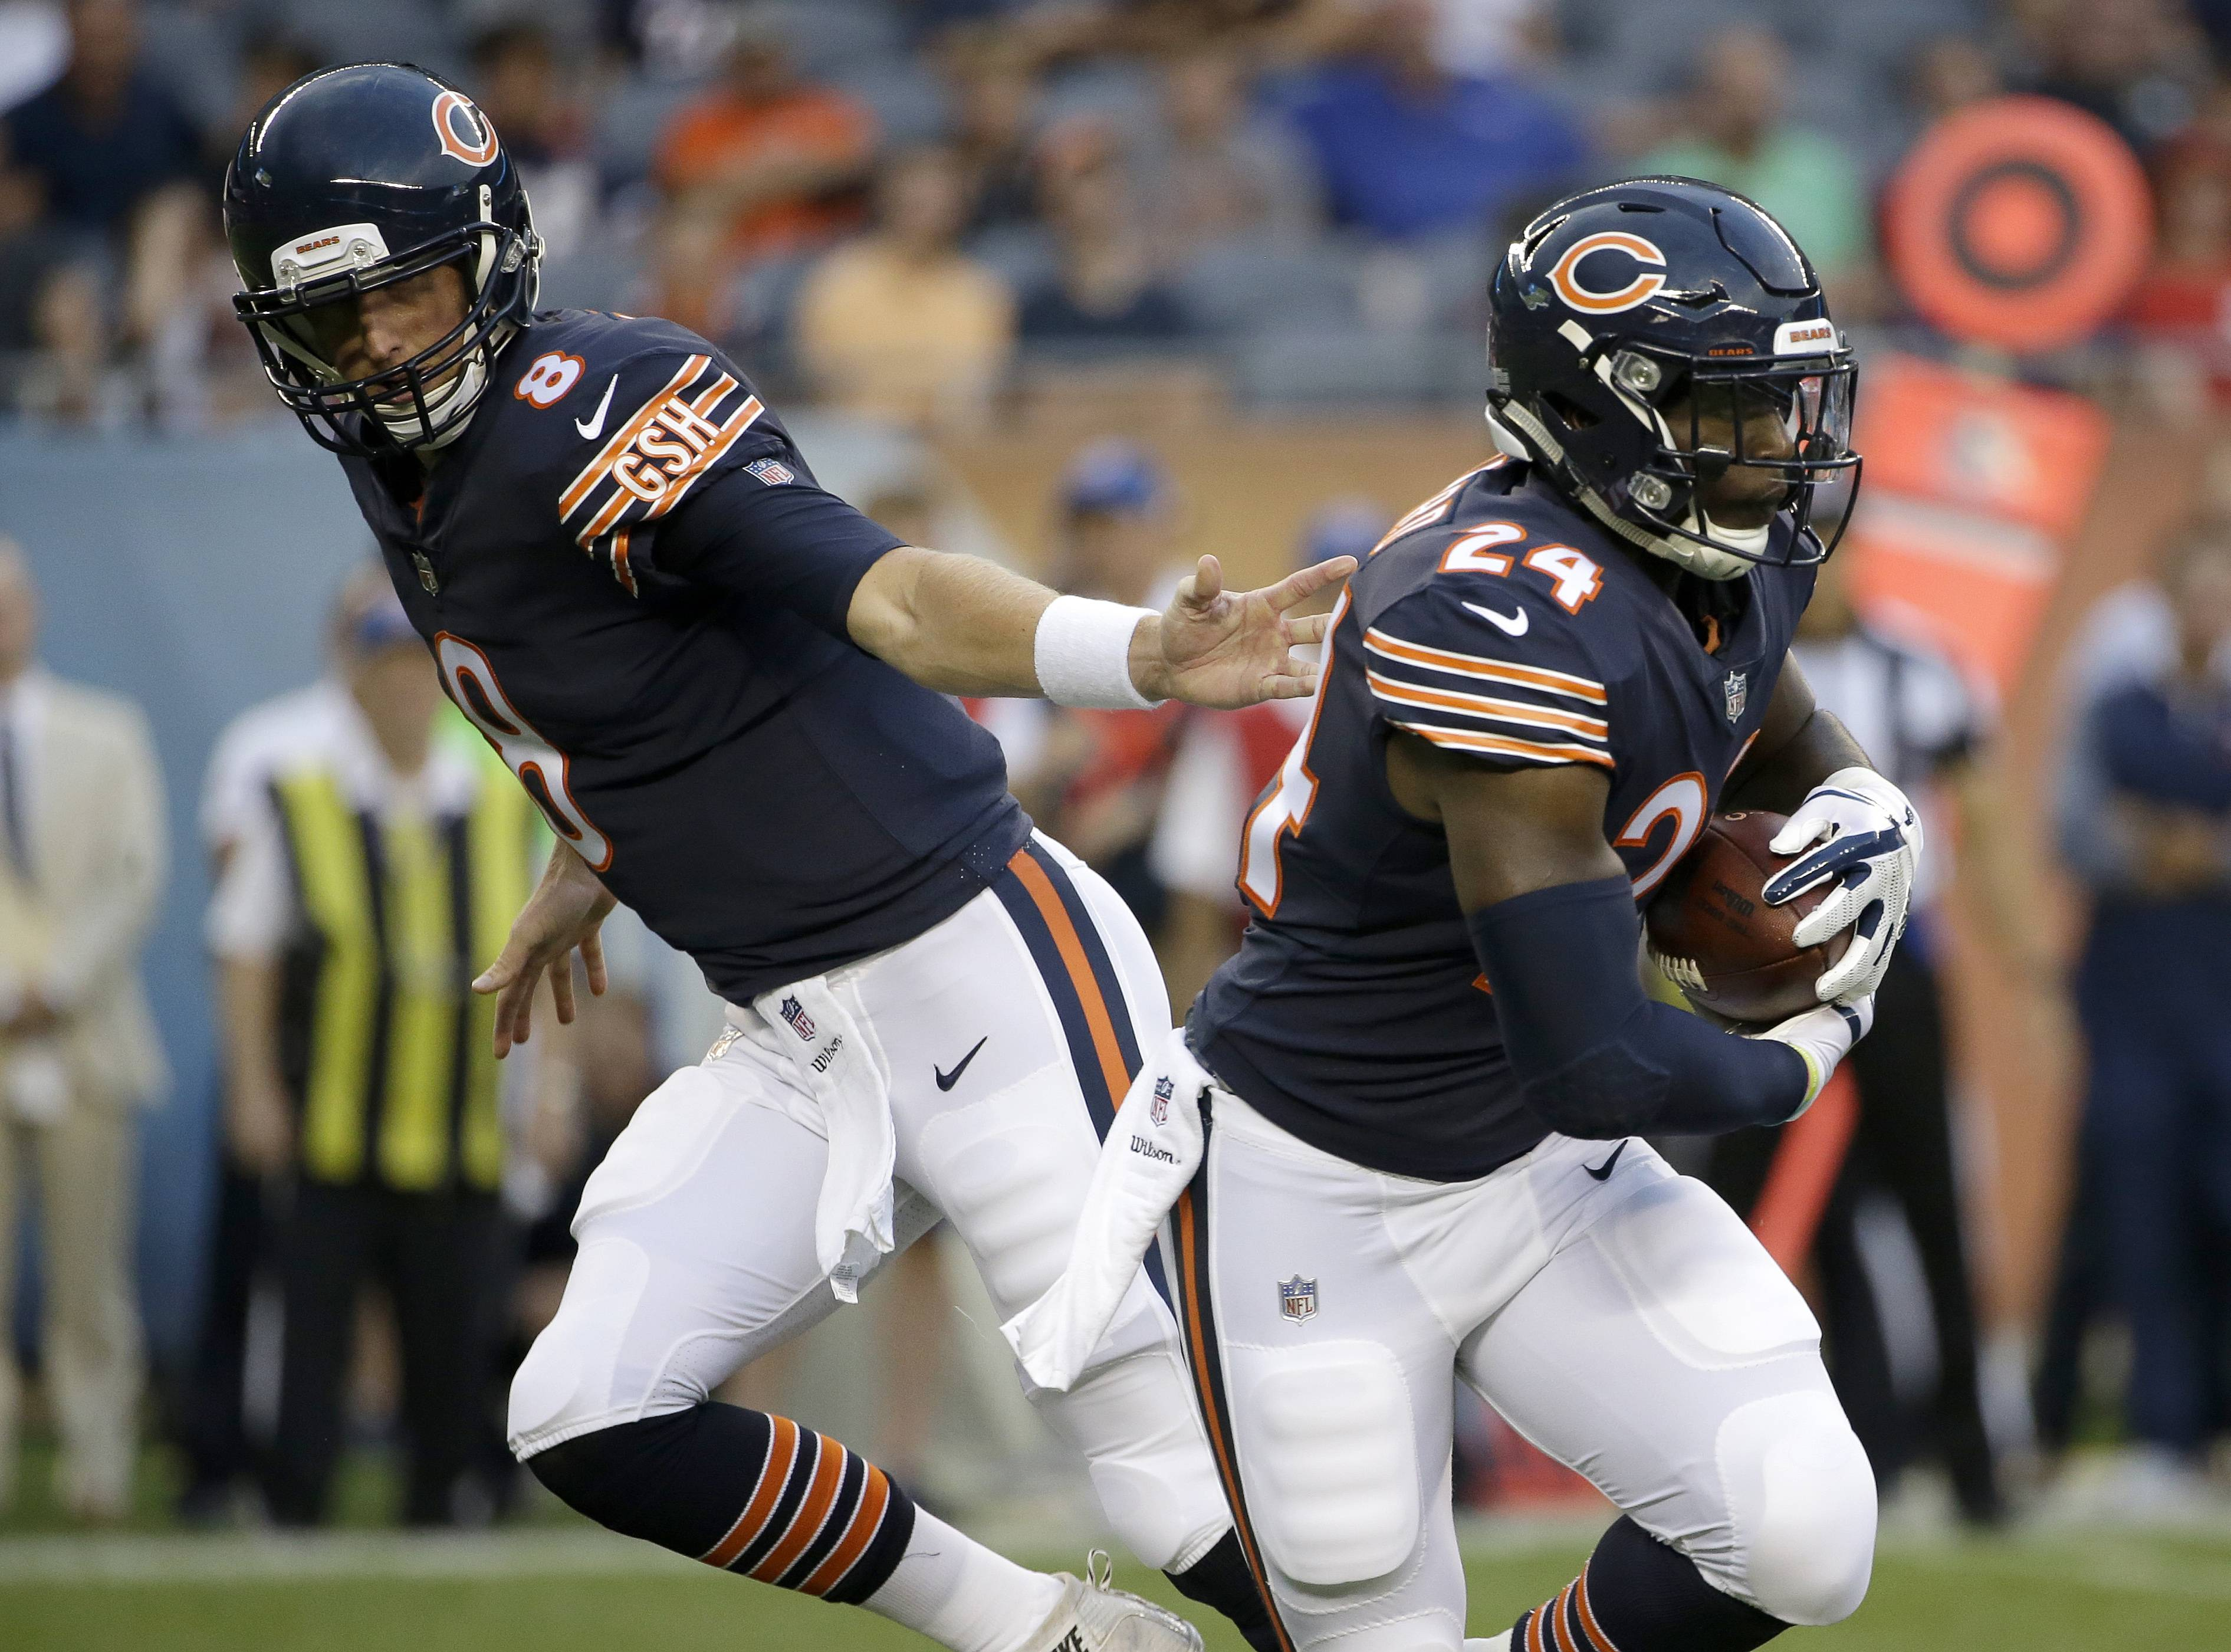 Bears RB Howard eager to build on last year's success